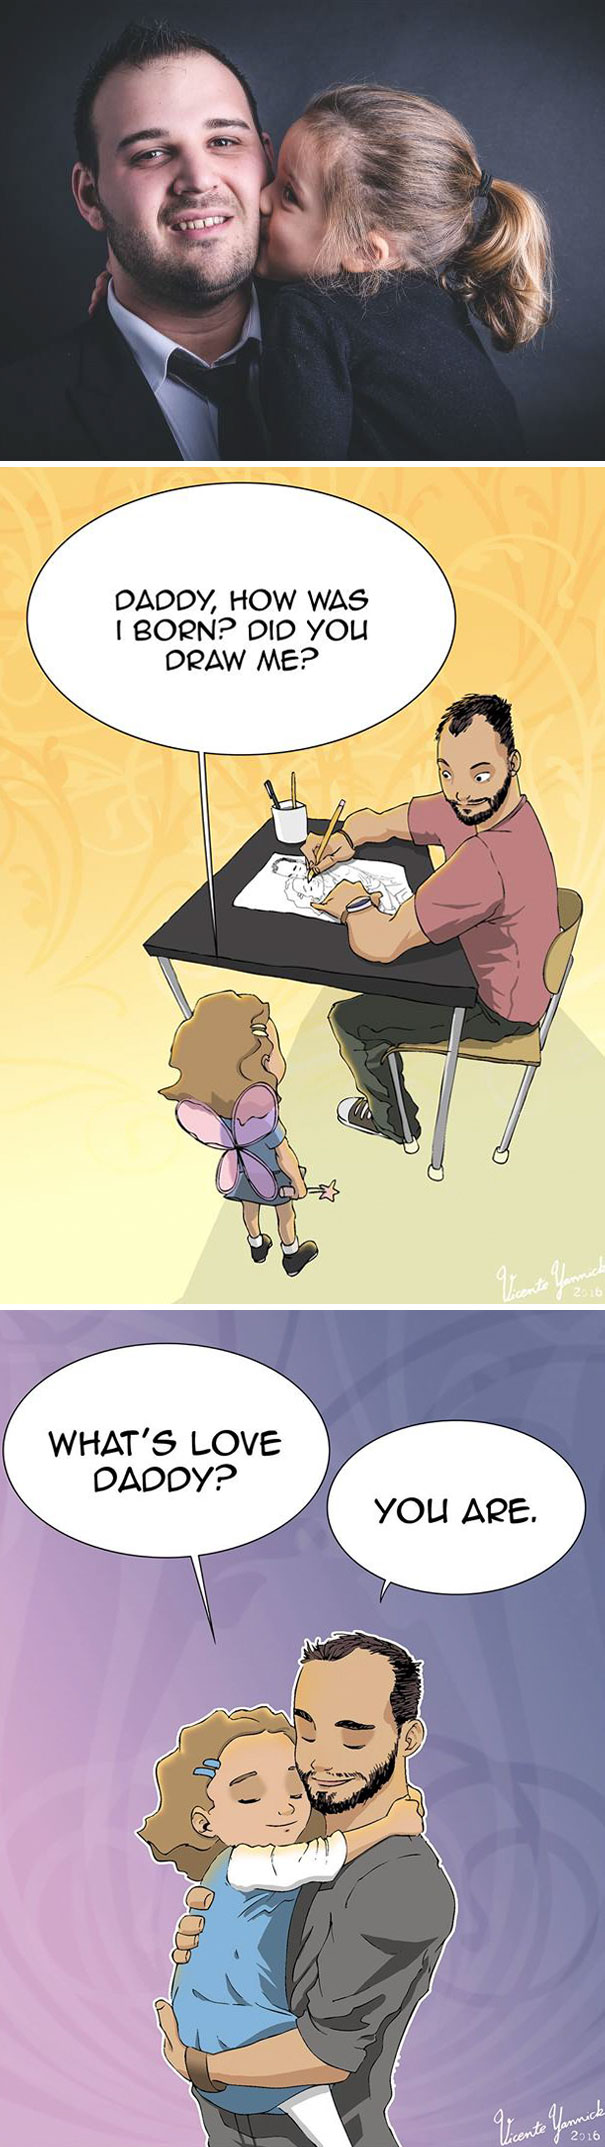 This Single Dad Is Making Heartwarming Illustrations Of Everyday Life With His Daughter